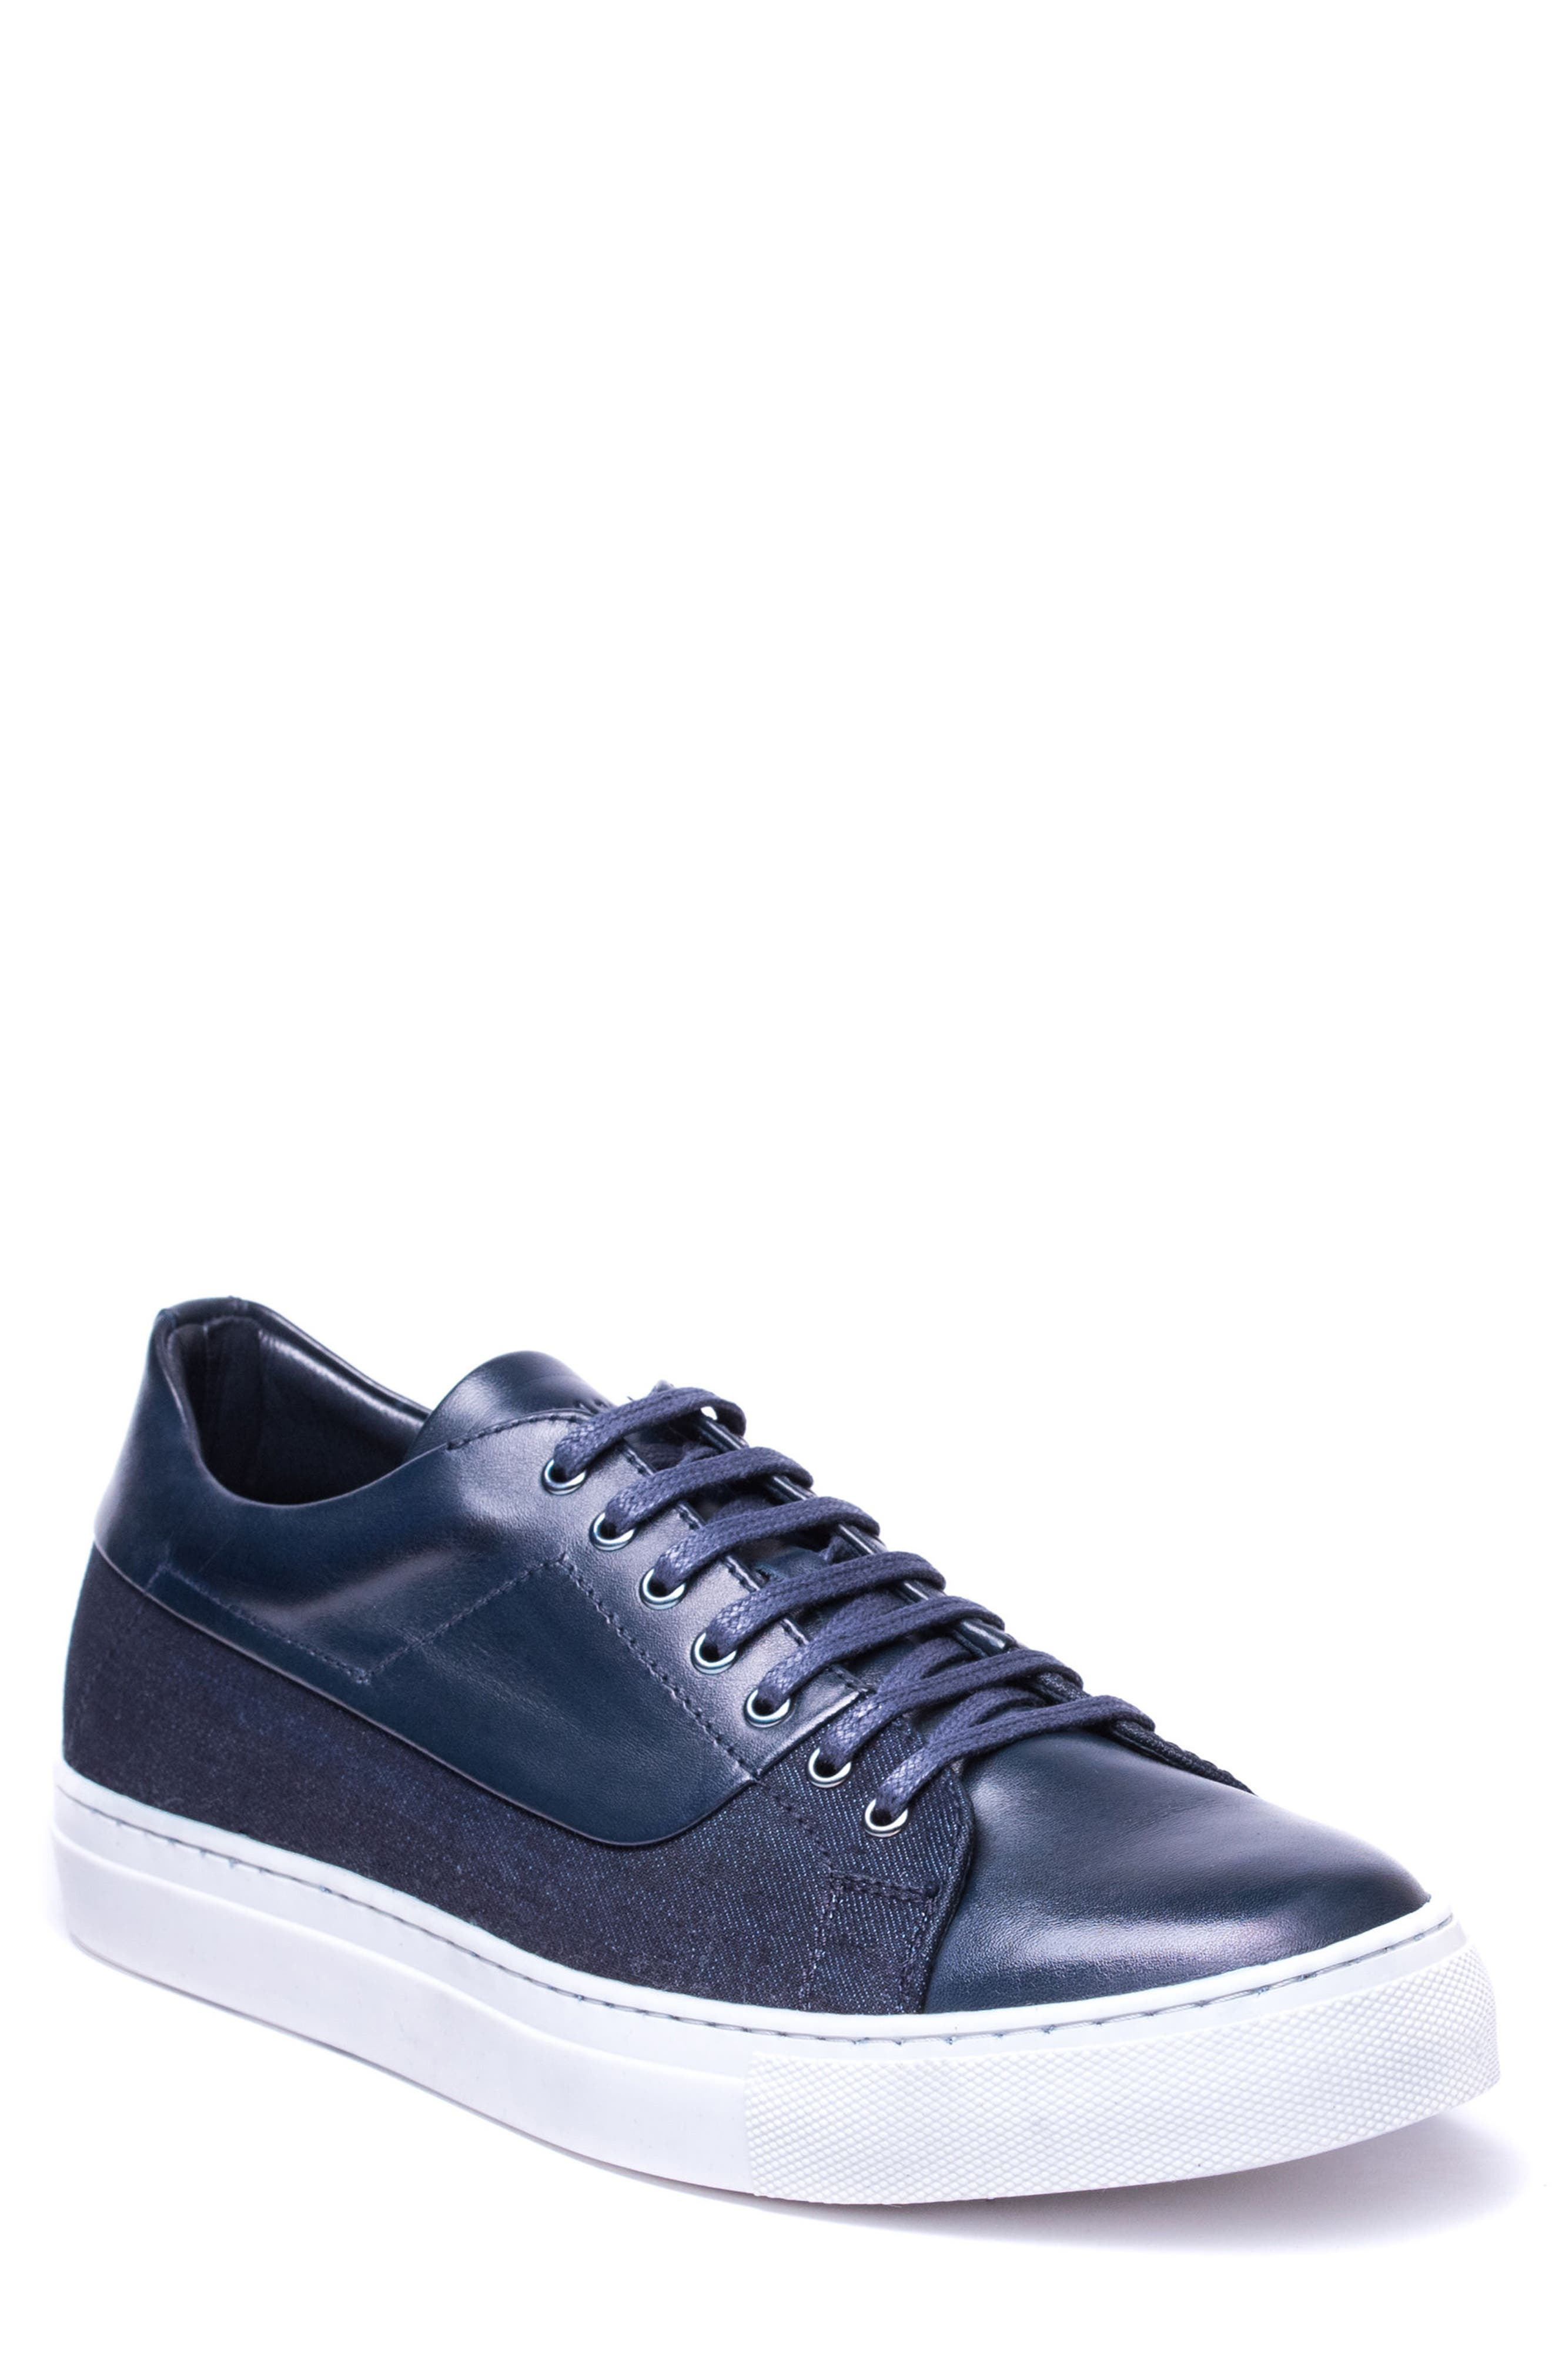 Luke Low Top Sneaker,                         Main,                         color, NAVY LEATHER